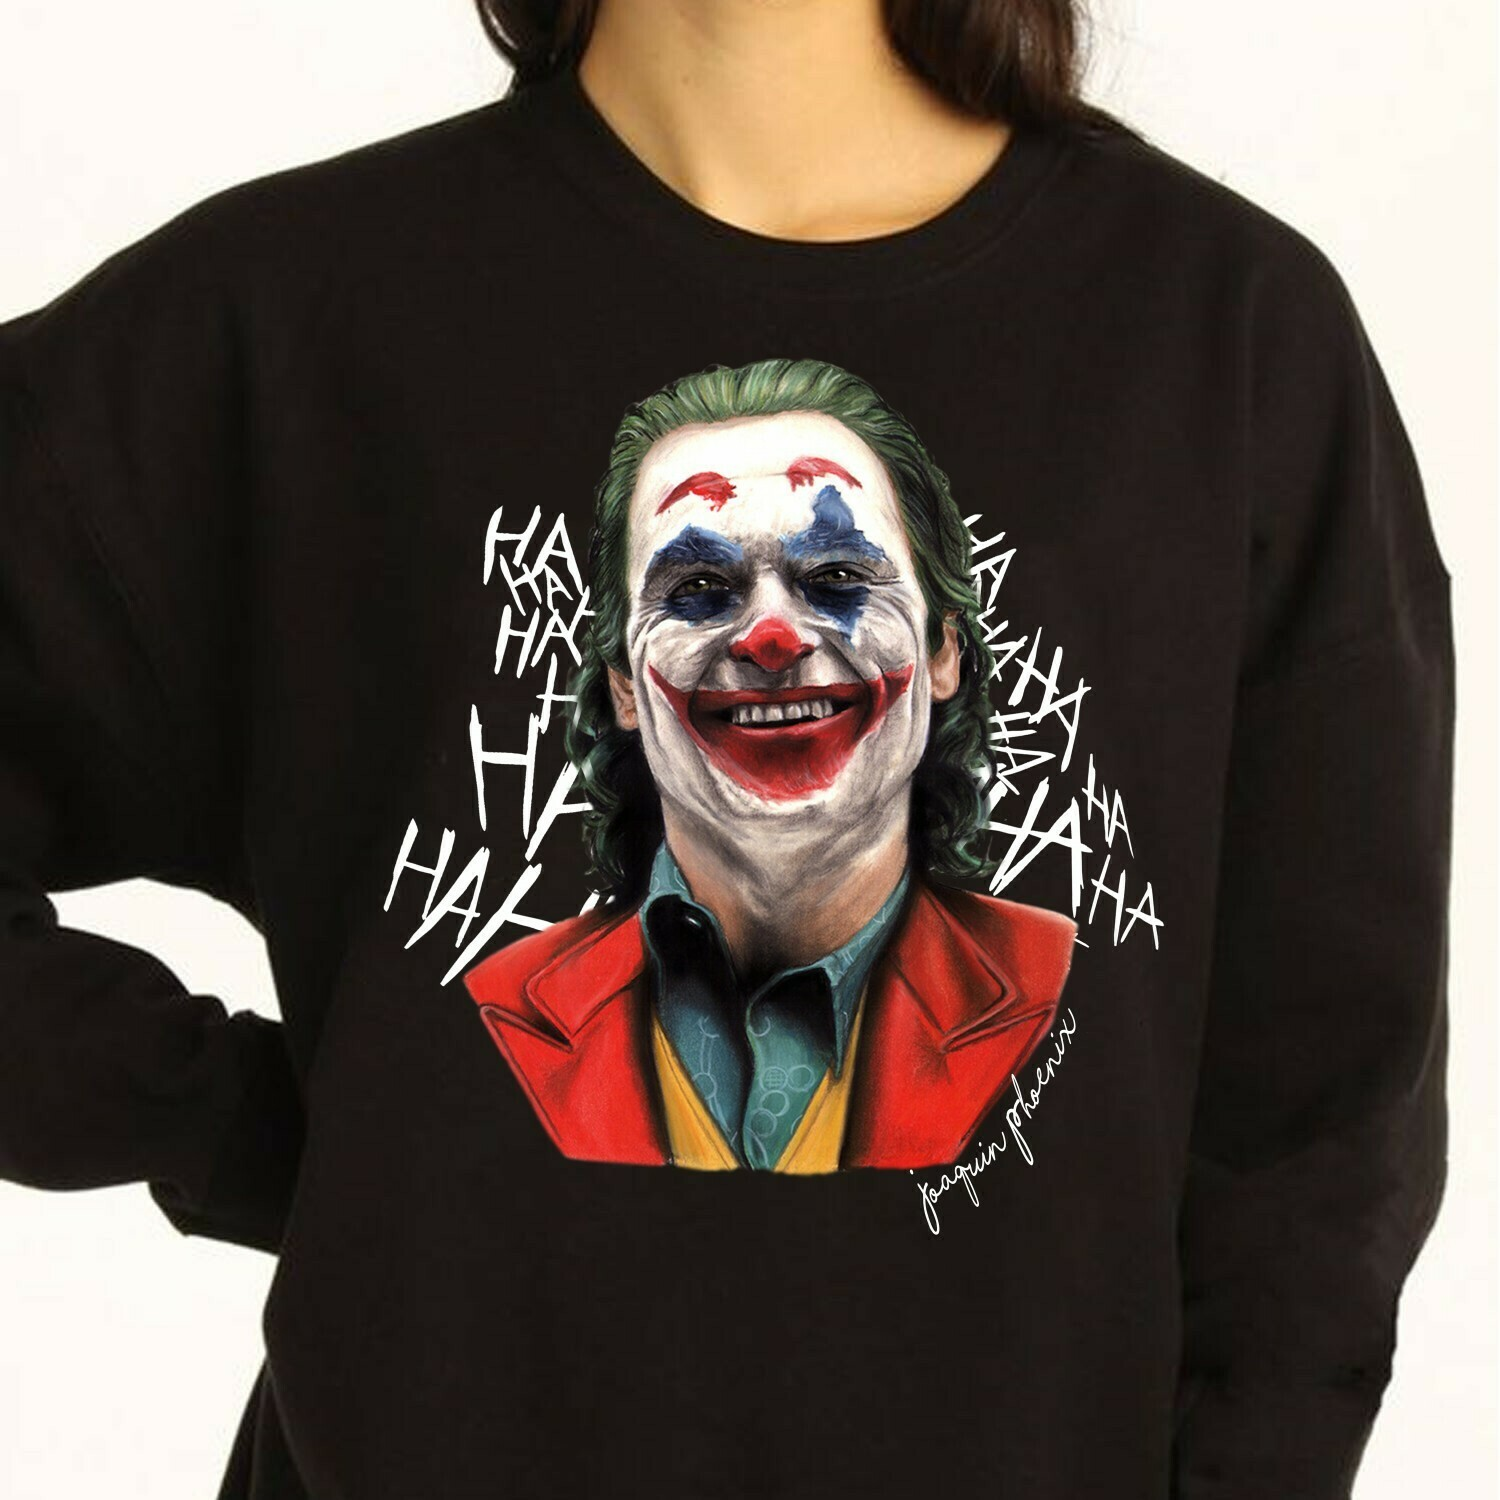 Joaquin Phoenix 2019 Joker Movie Gifts Idea For Fans Here Comes Your Favorite Villain Halloween Movie T-shirt Long Sleeve Sweatshirt Hoodie Jolly Family Gifts